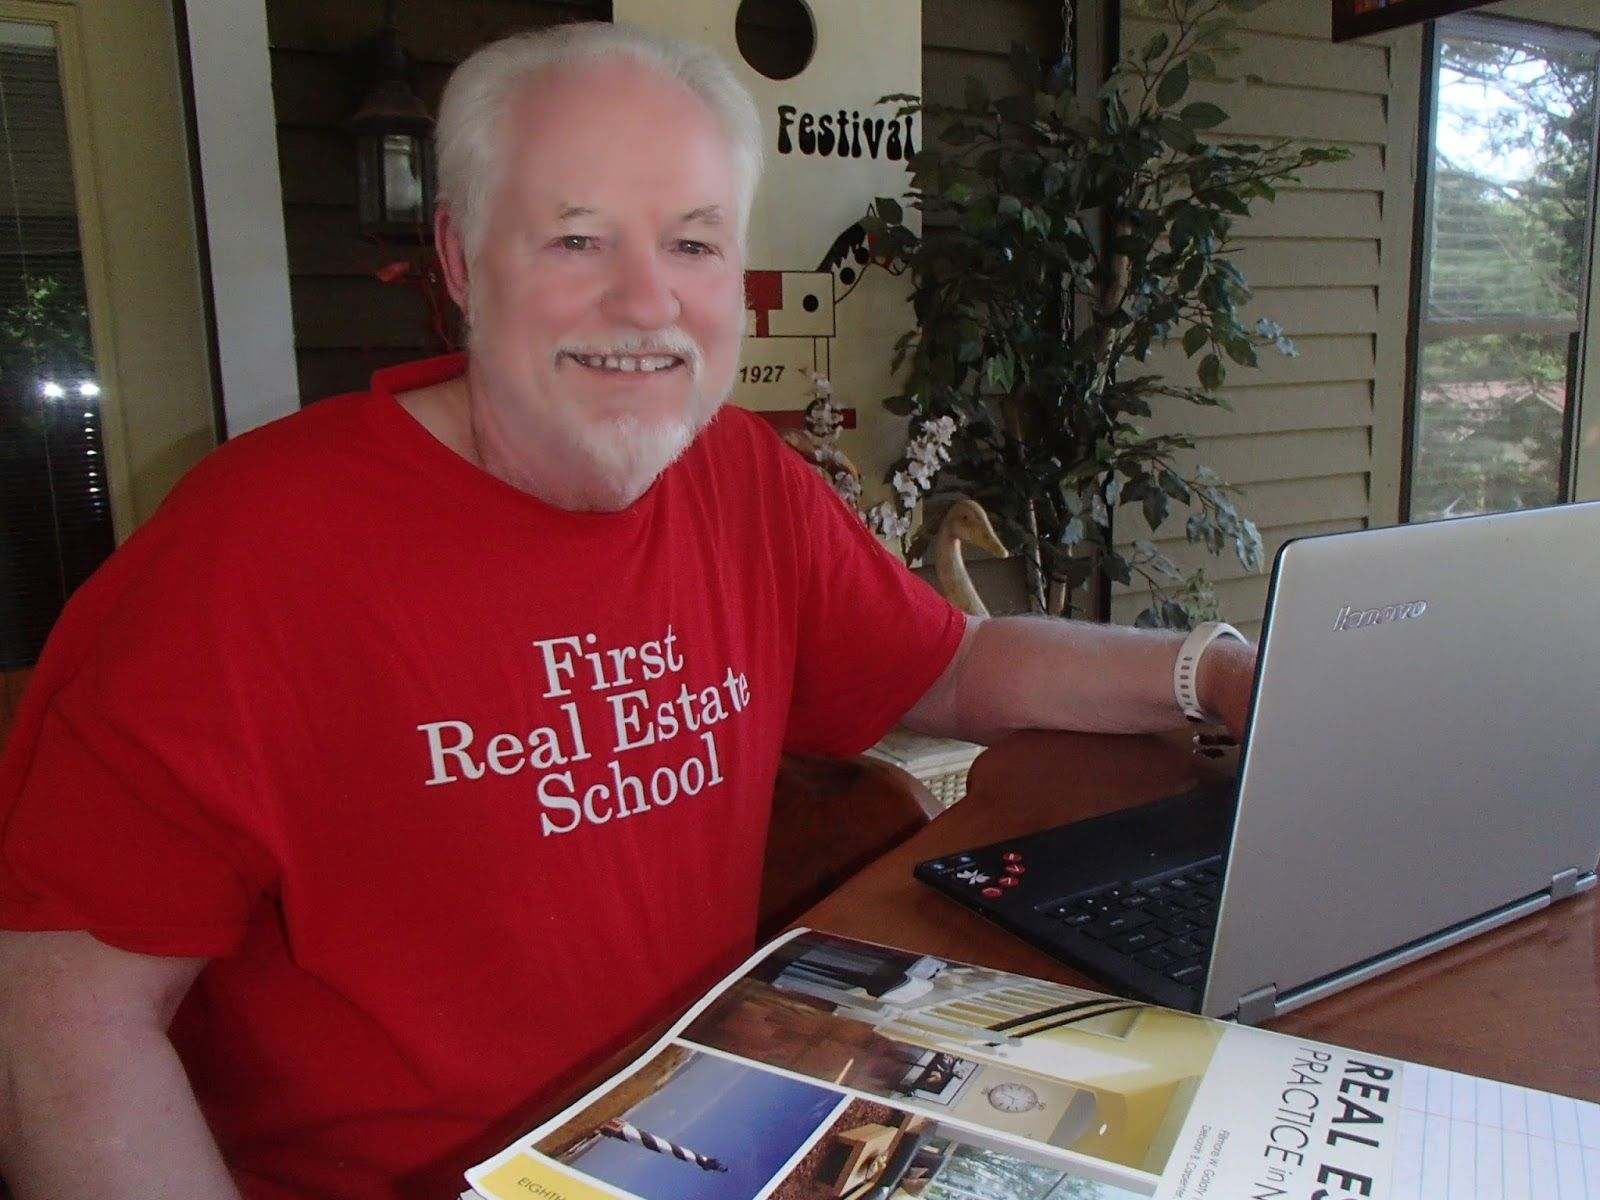 Ron Climer Mountain Messages Real estate school, Real